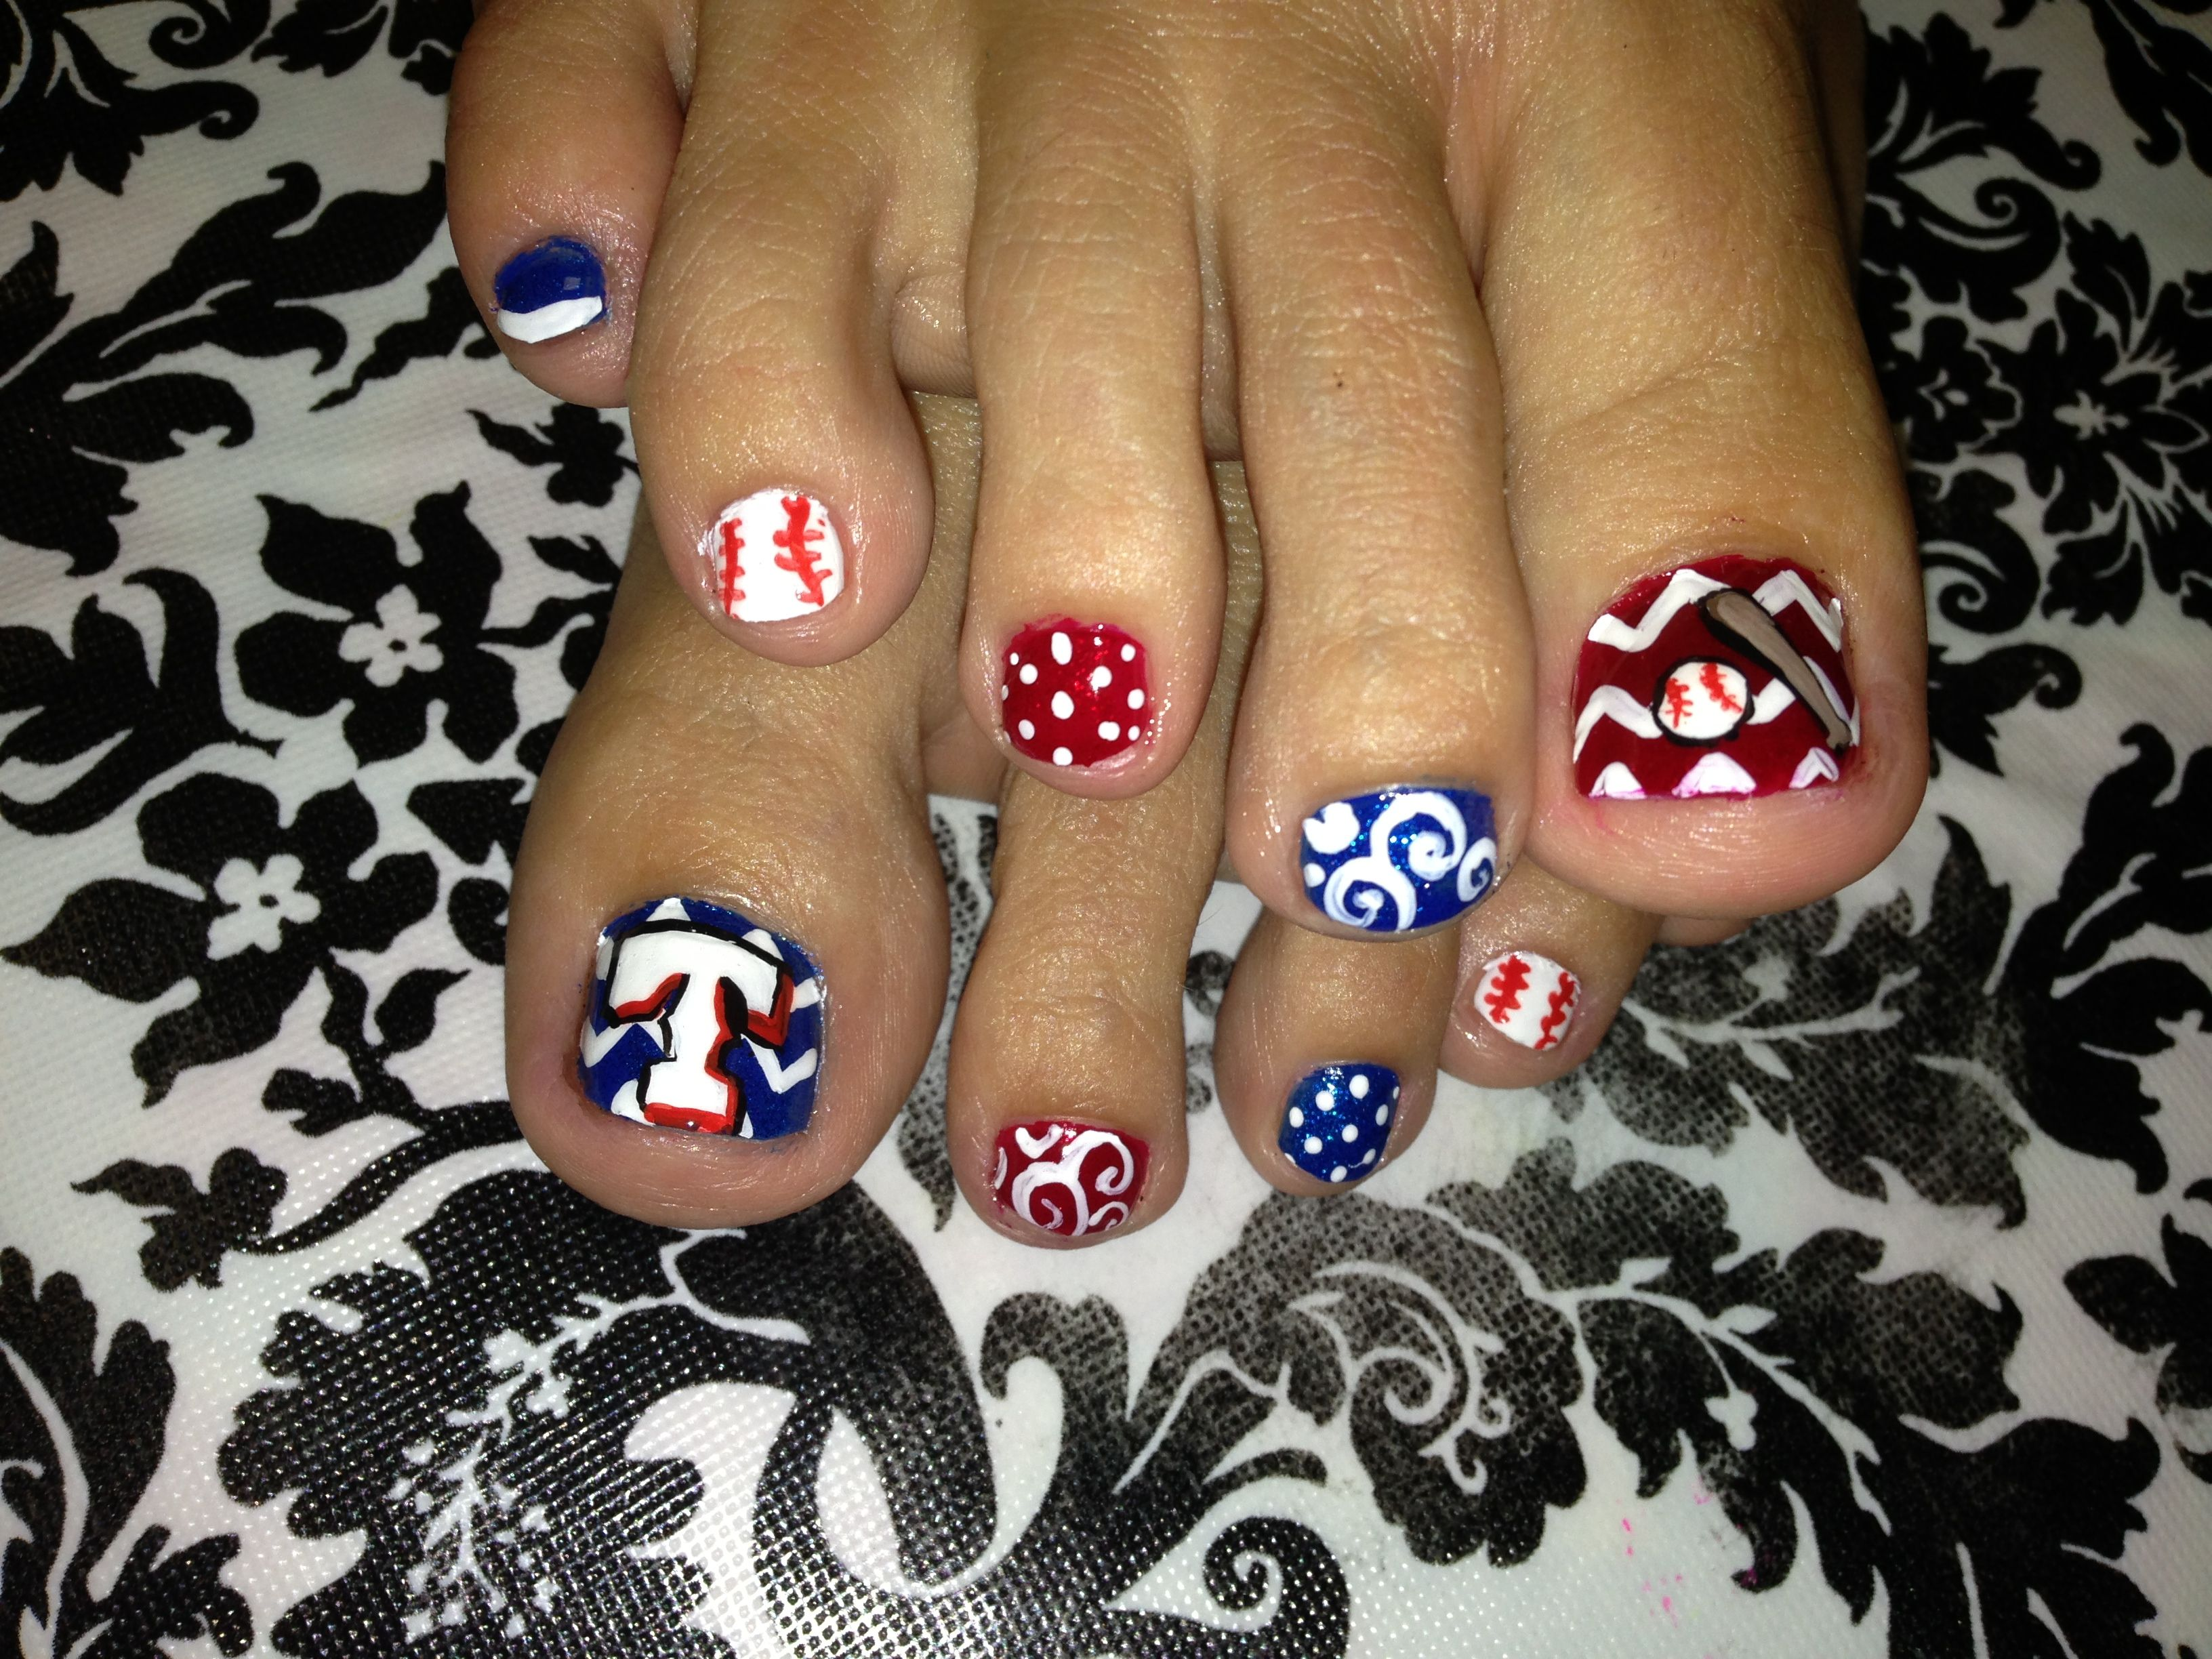 Texas Rangers Nail Art My Could Do This So Much Better